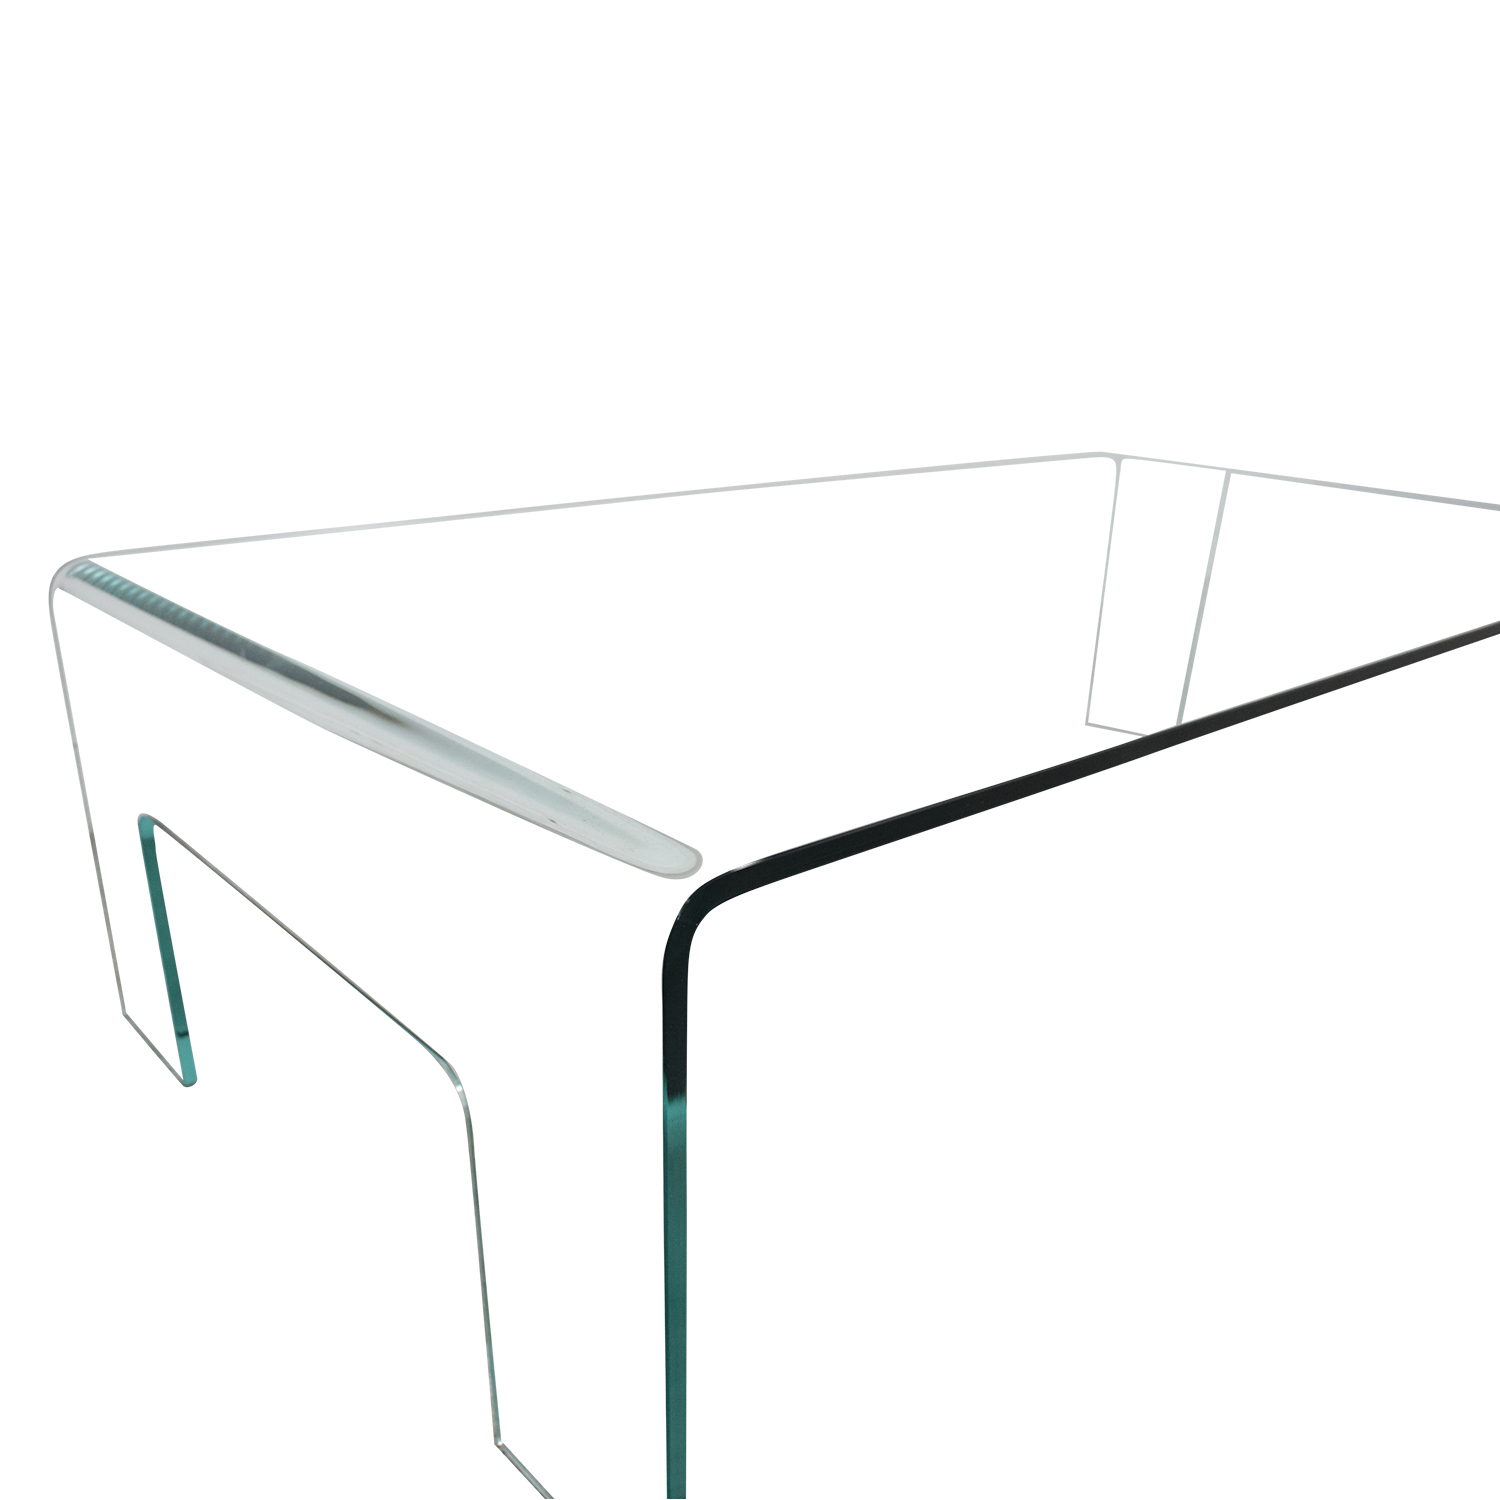 Calligaris Calligaris Connubia Real Coffee Table on sale